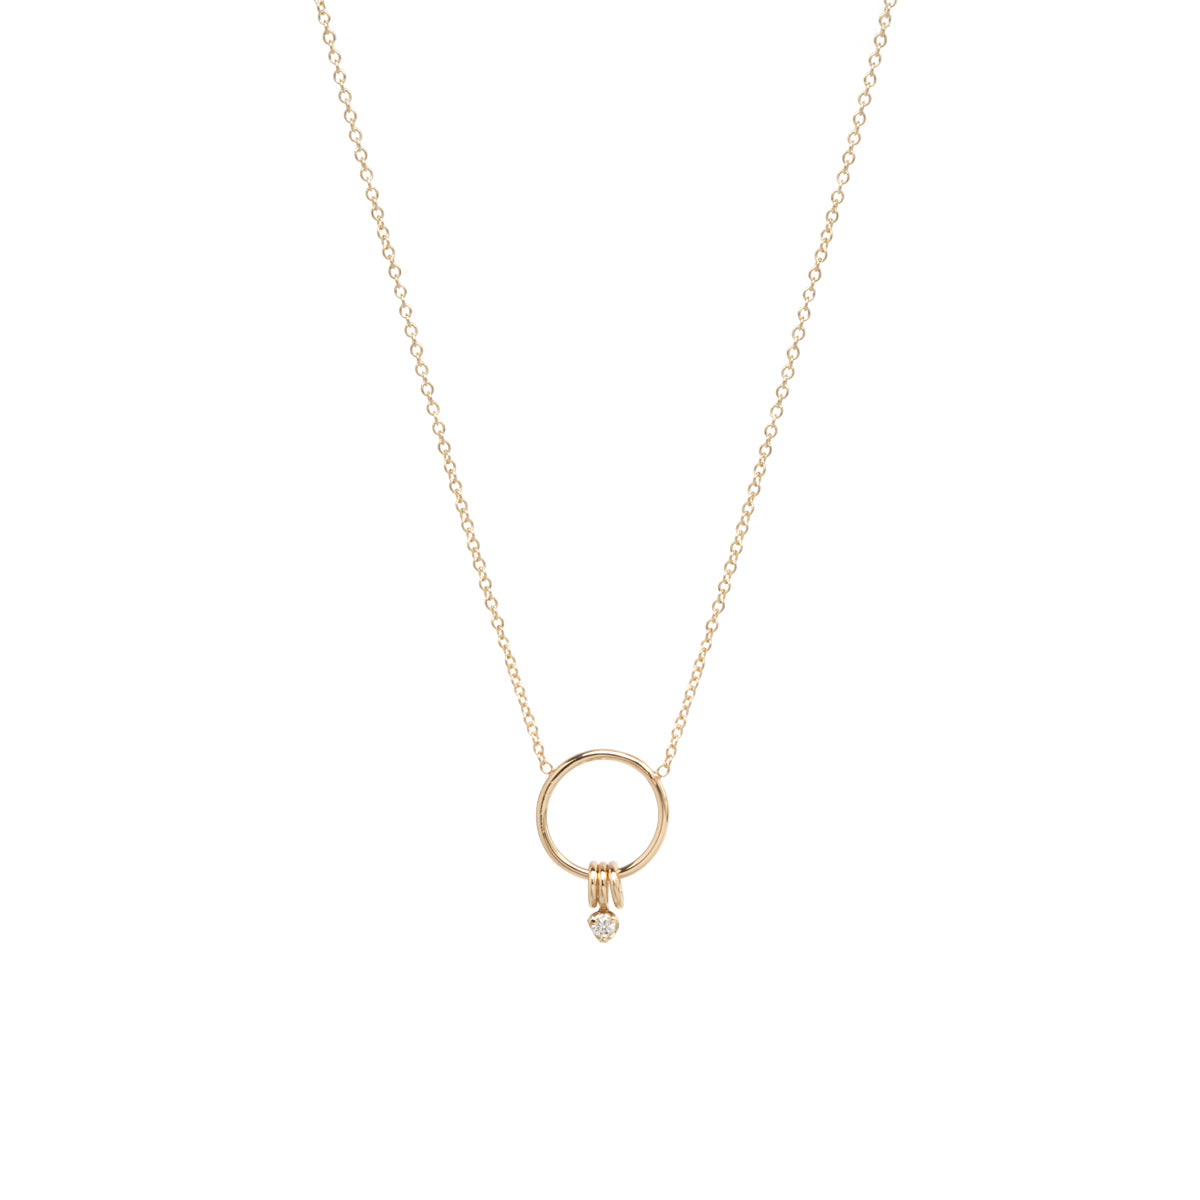 14k small circle necklace with 3 rings and single prong diamond